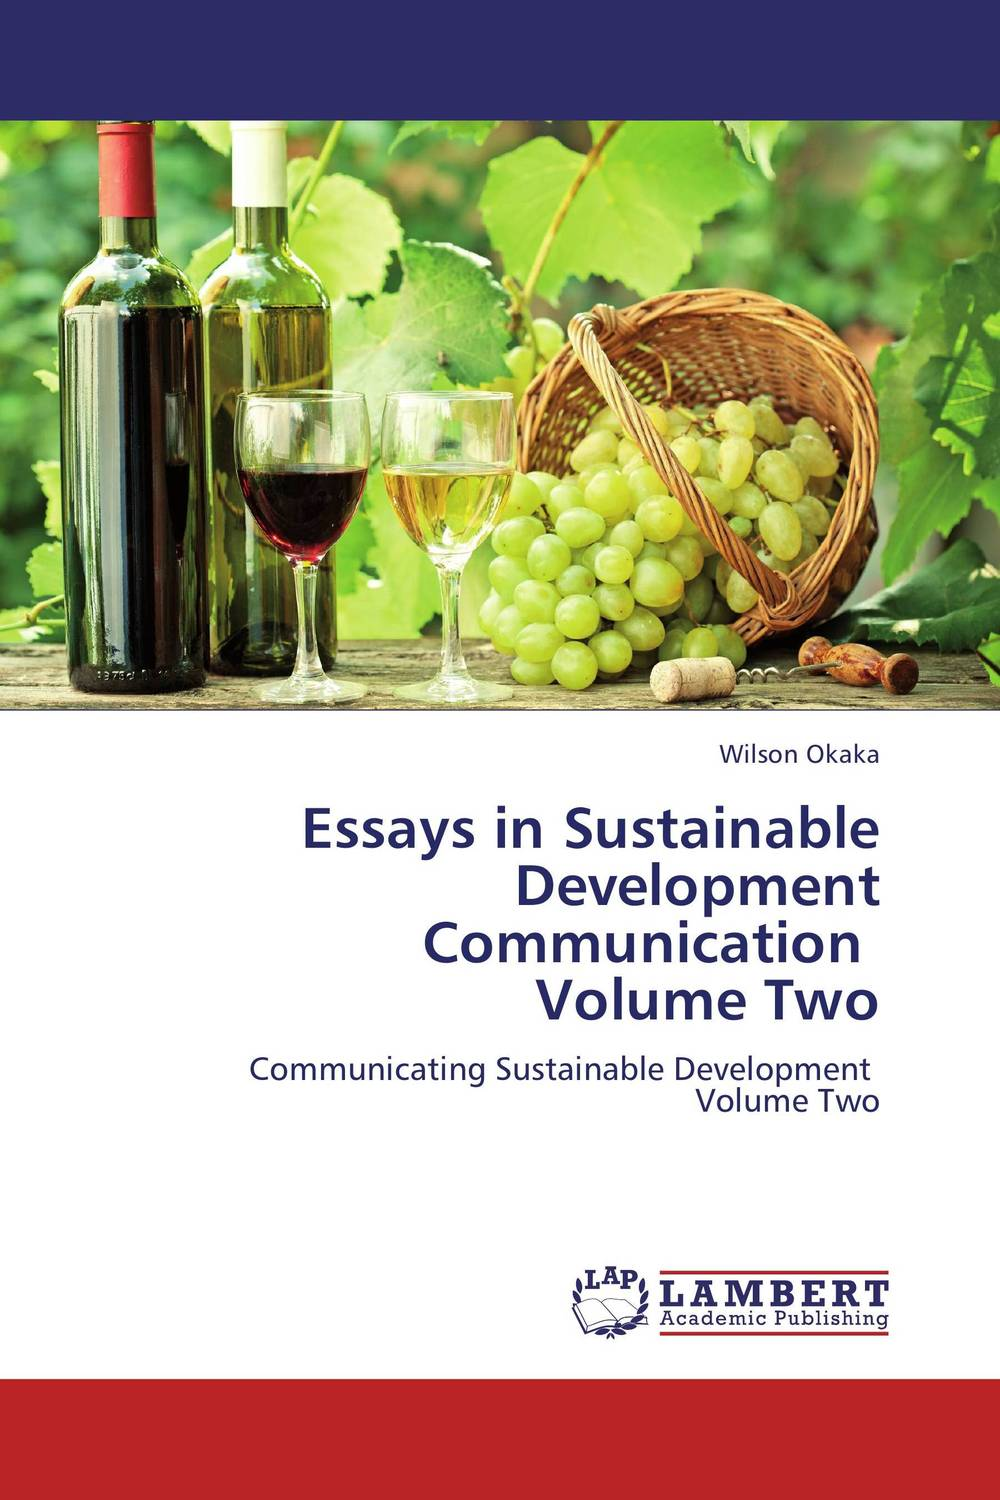 Essays in Sustainable Development Communication Volume Two